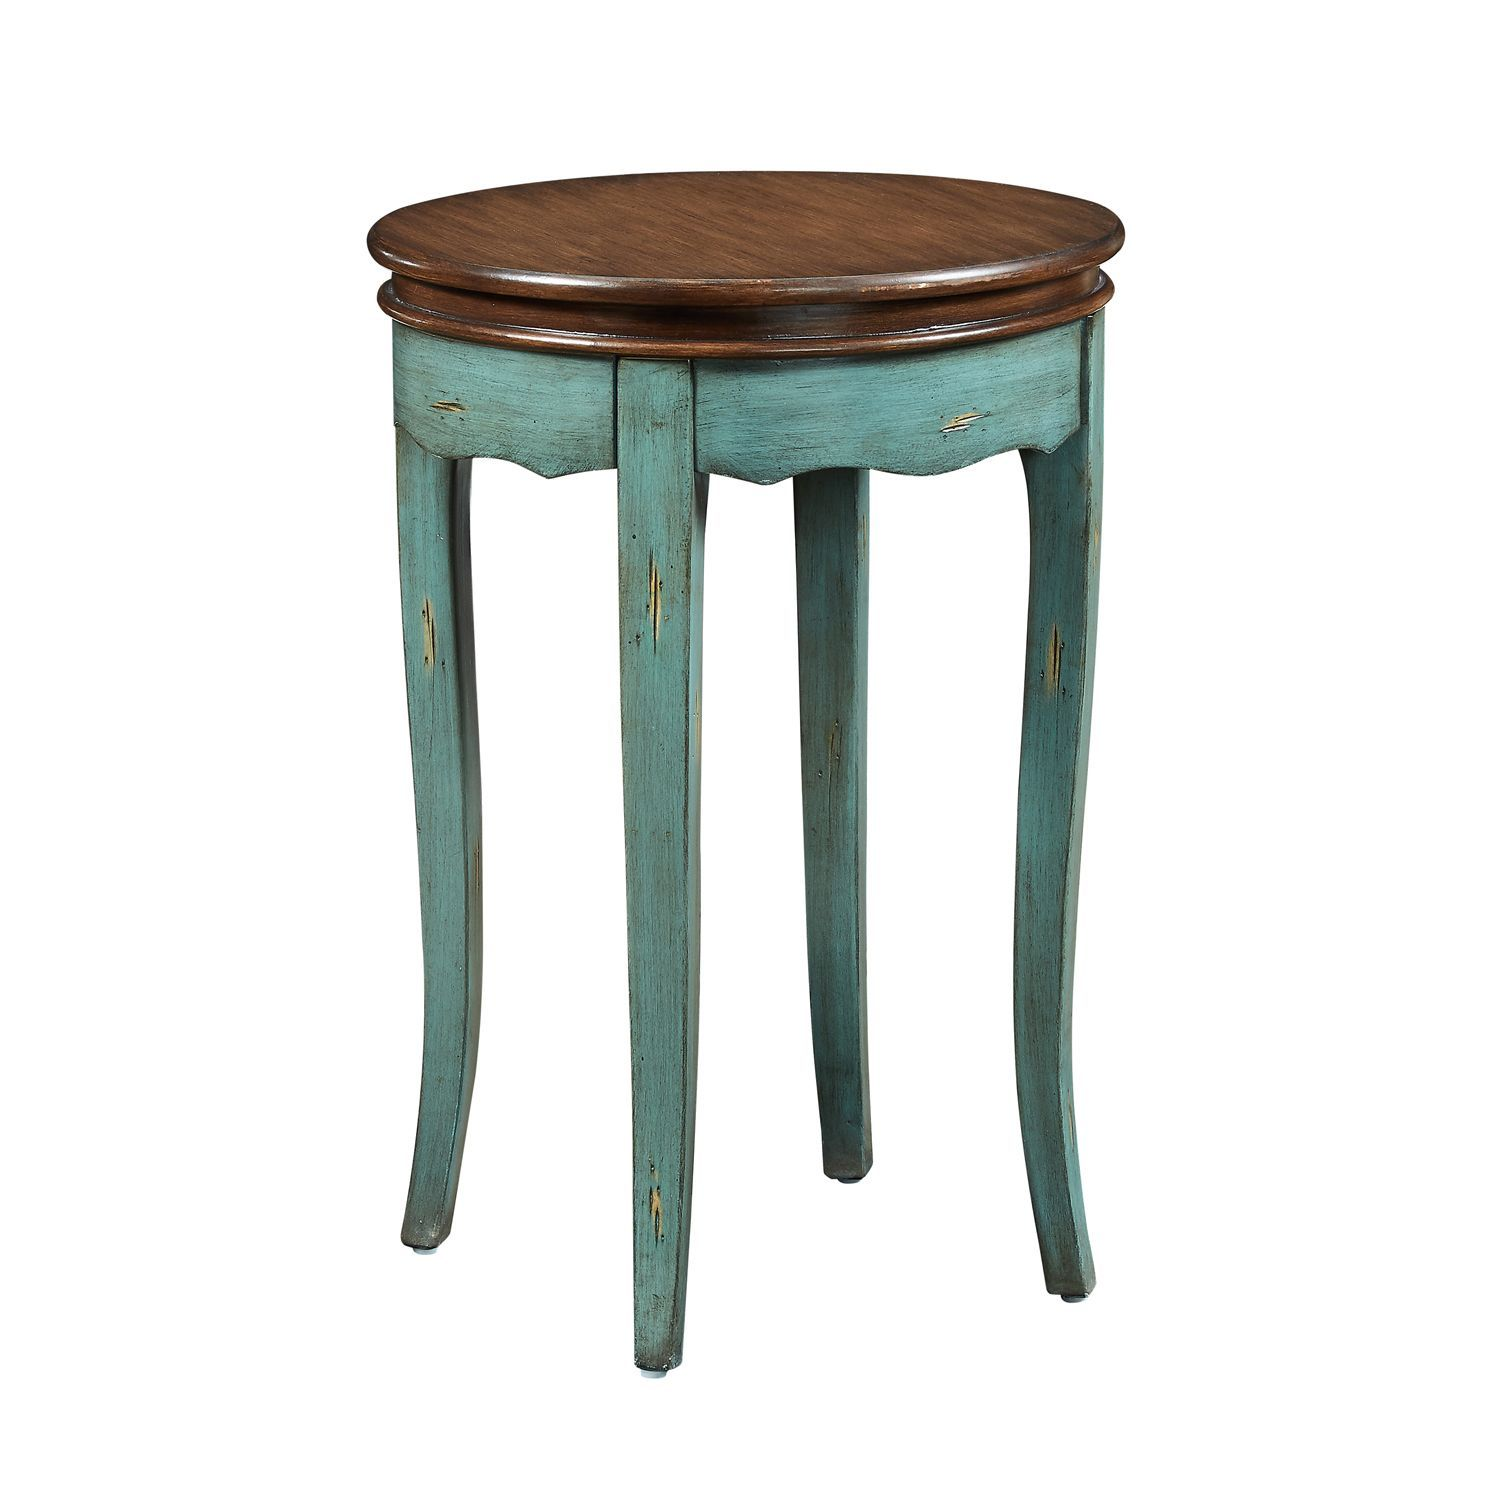 rachel teal round side table living room accent end blue and white umbrella square lucite drum throne parts modern nesting tables bronze glass coffee clearance dining chairs ikea